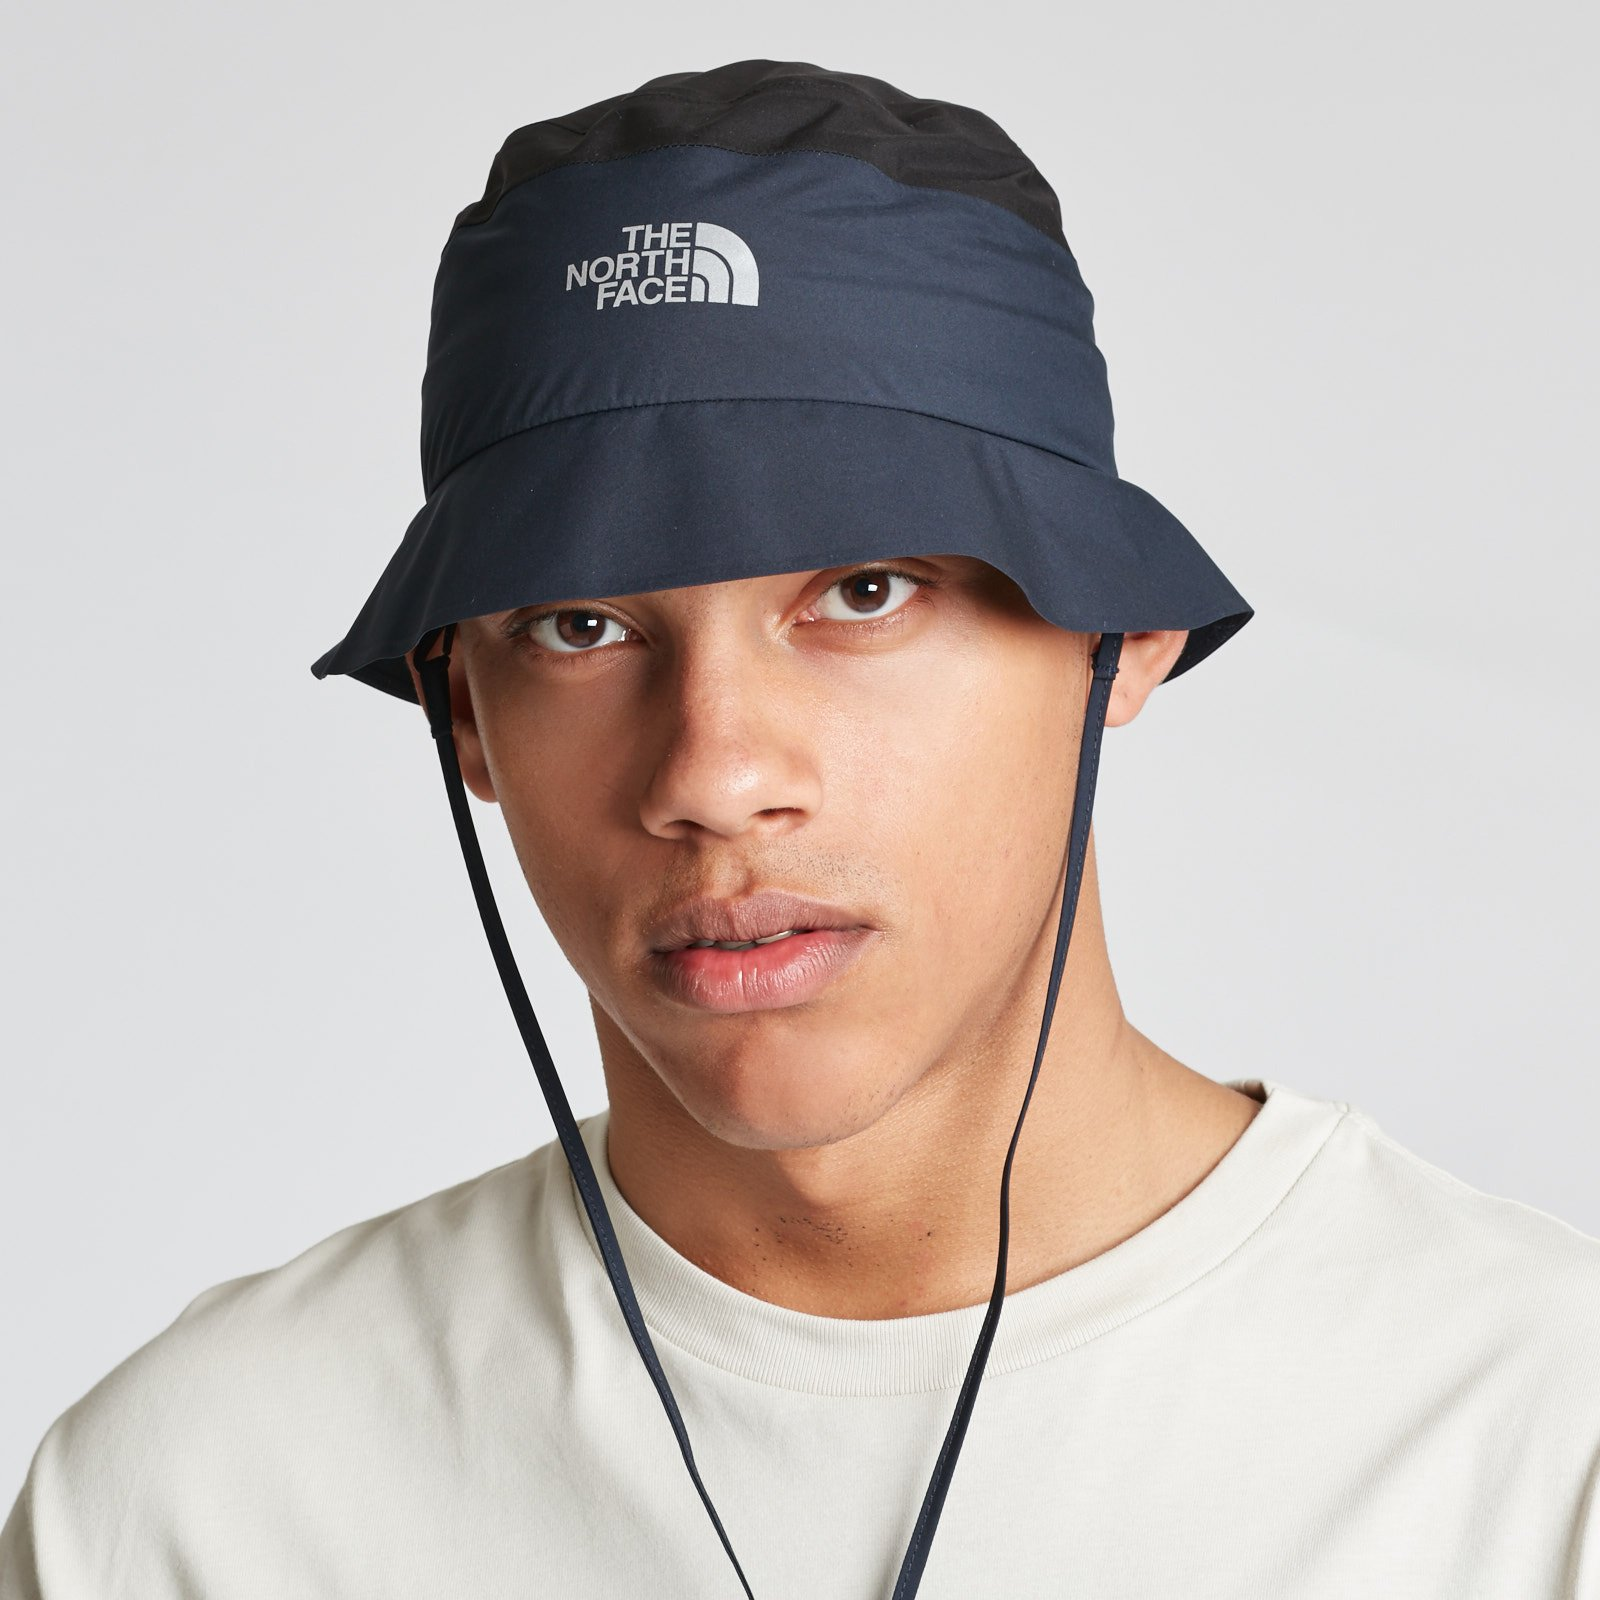 b62736039201b8 The North Face GORE-TEX Bucket Hat - T0cf9lsxk - Sneakersnstuff ...